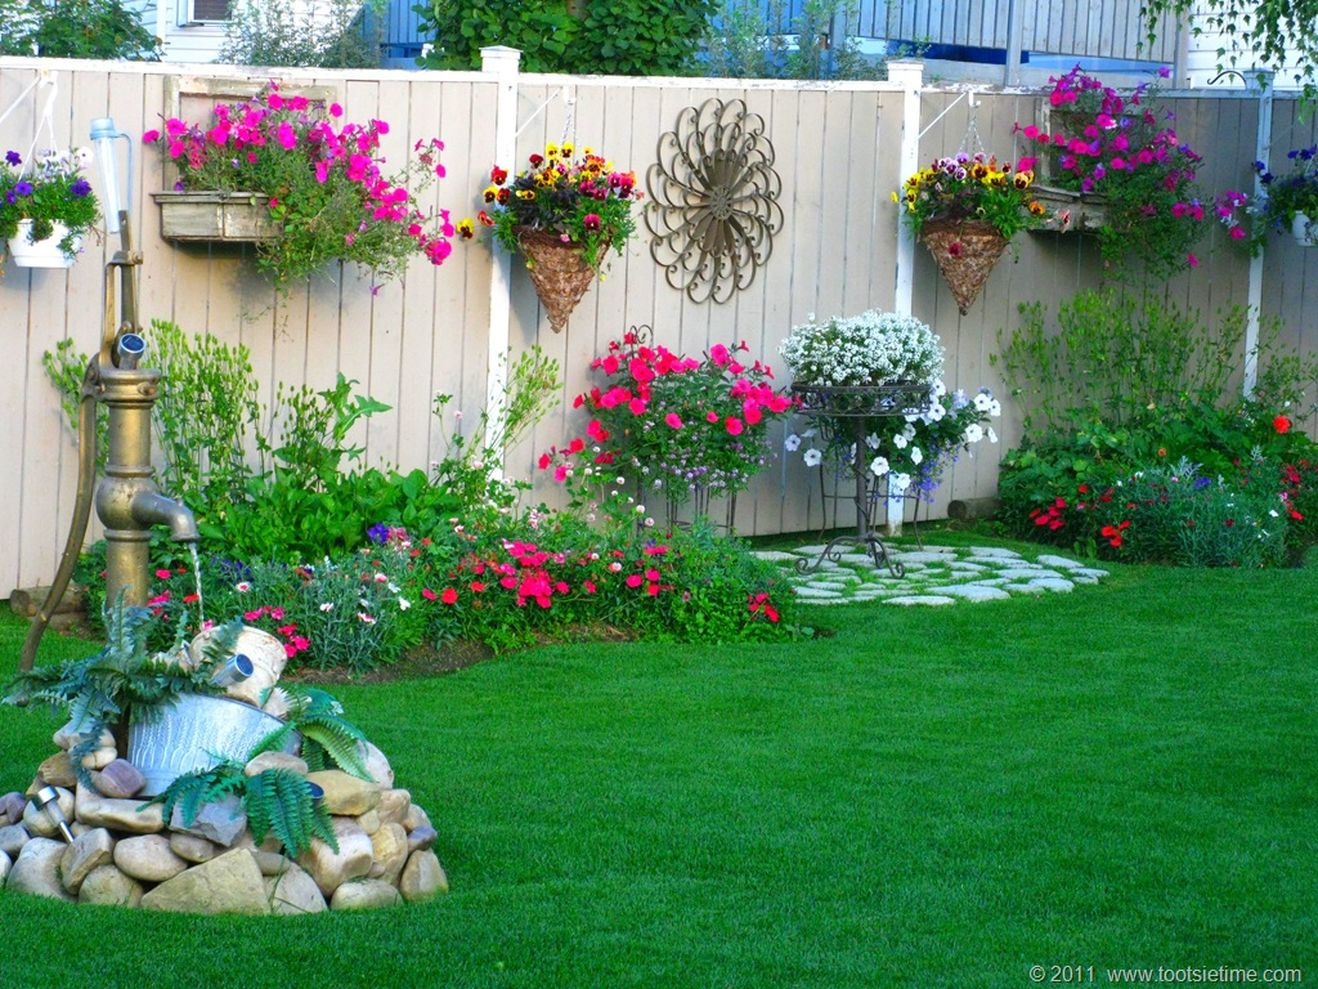 Genial Beautiful Flower Garden Decor Ideas Everybody Will Love 45